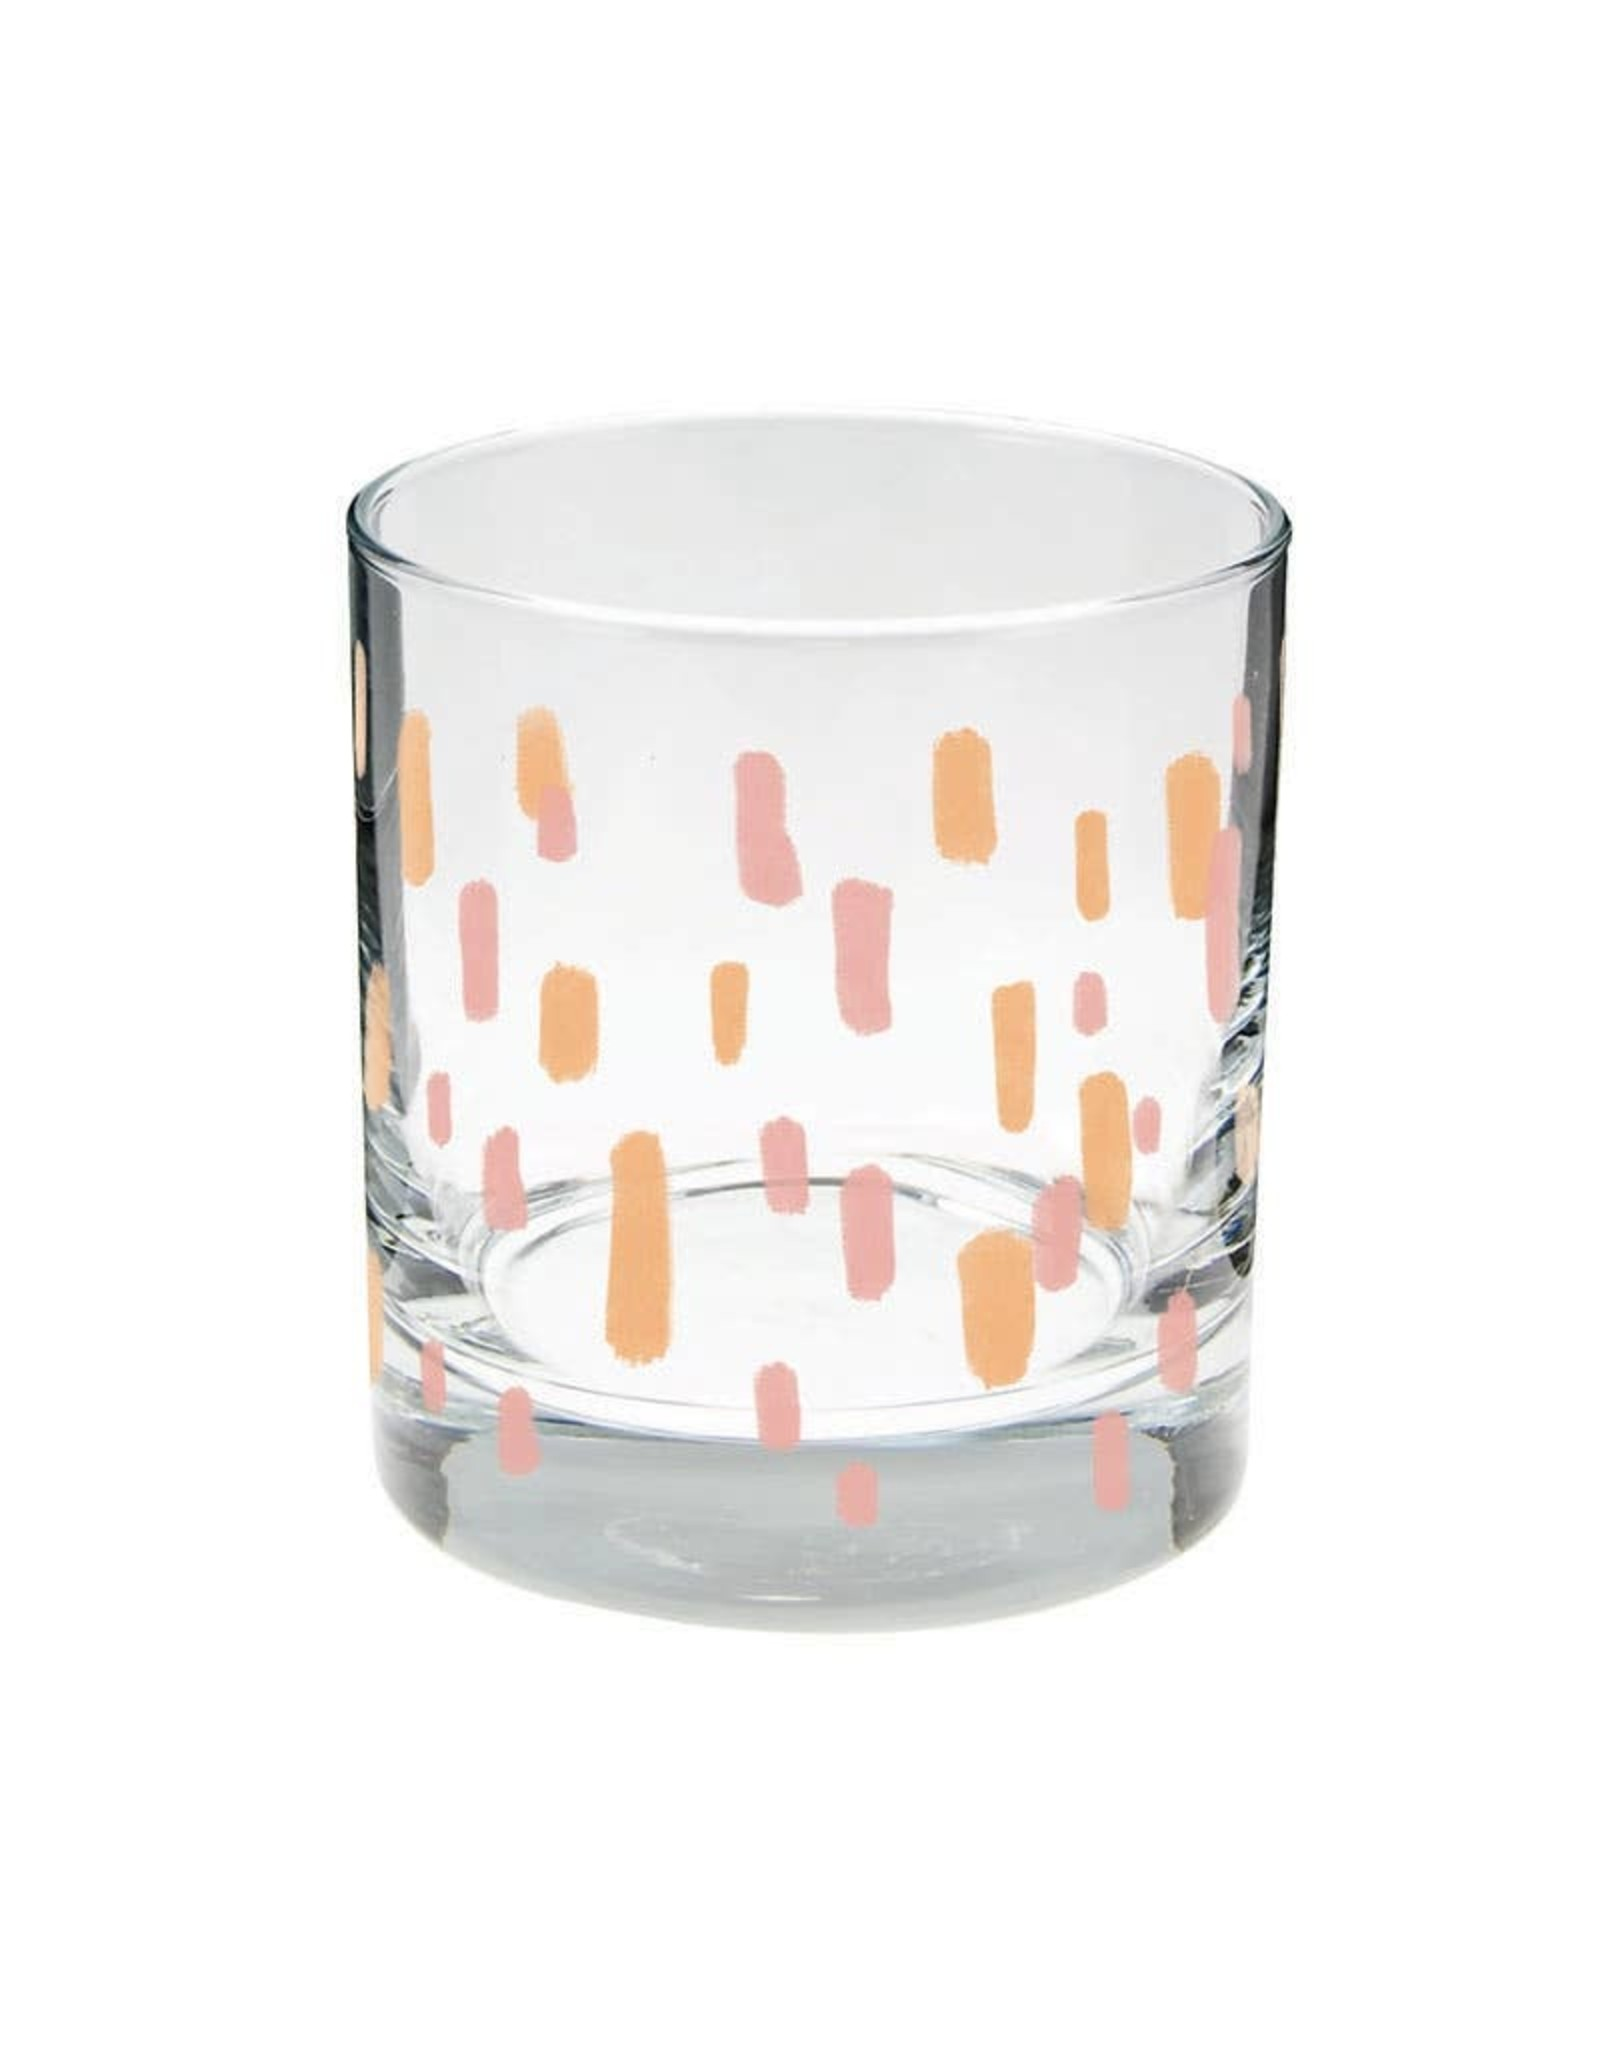 Talking Out of Turn Decorative Rocks Glasses